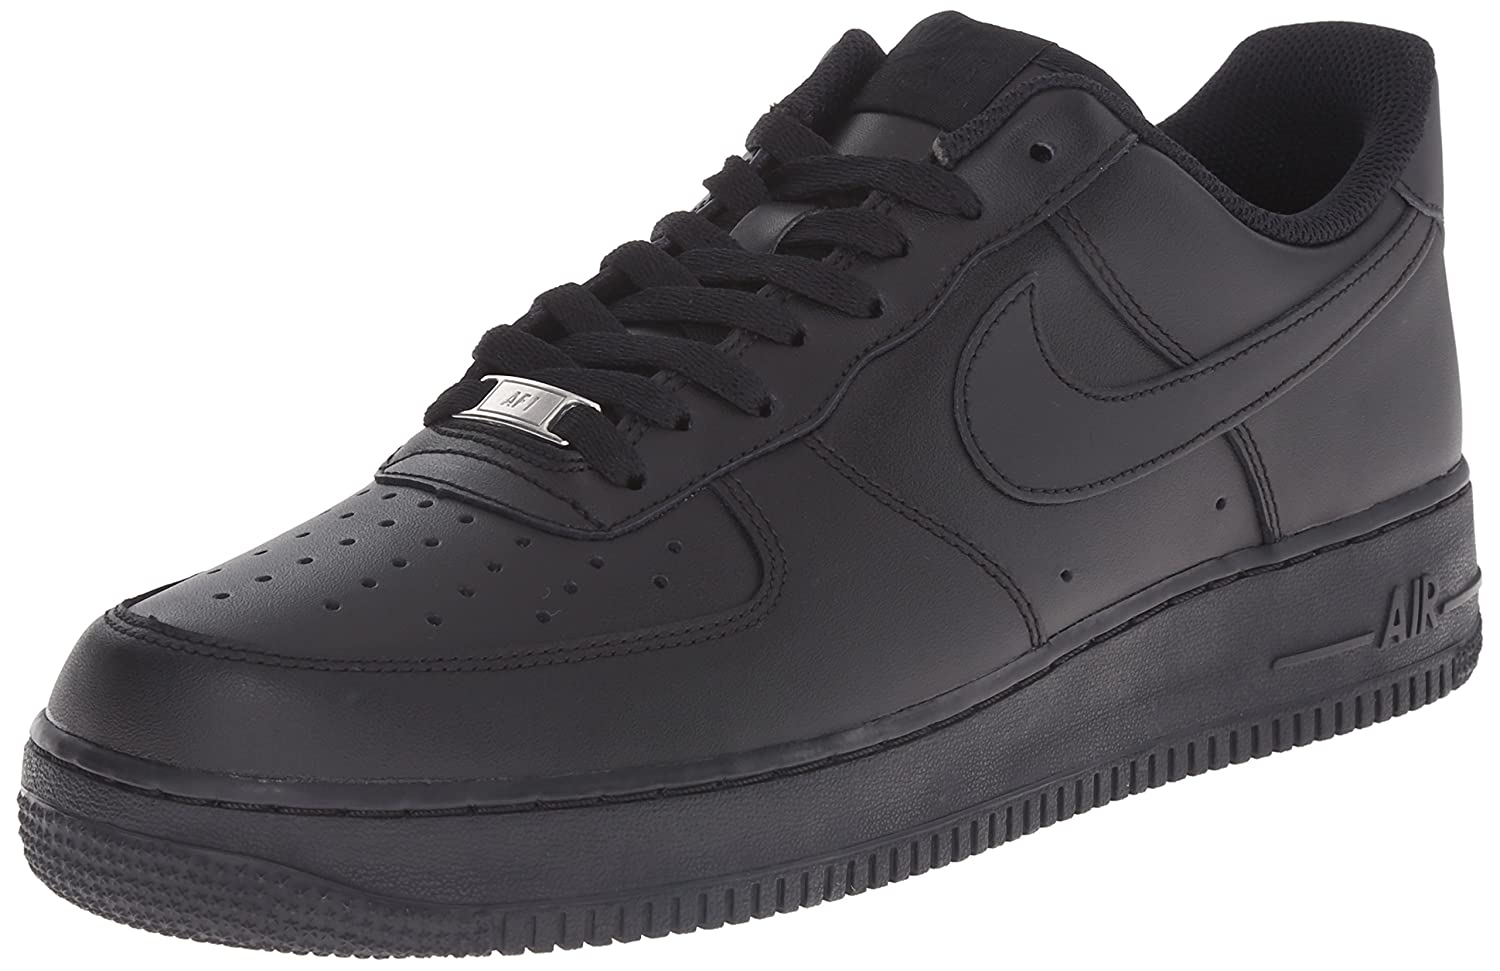 9ad102b437c Nike Men s Air Force 1 Low Sneaker